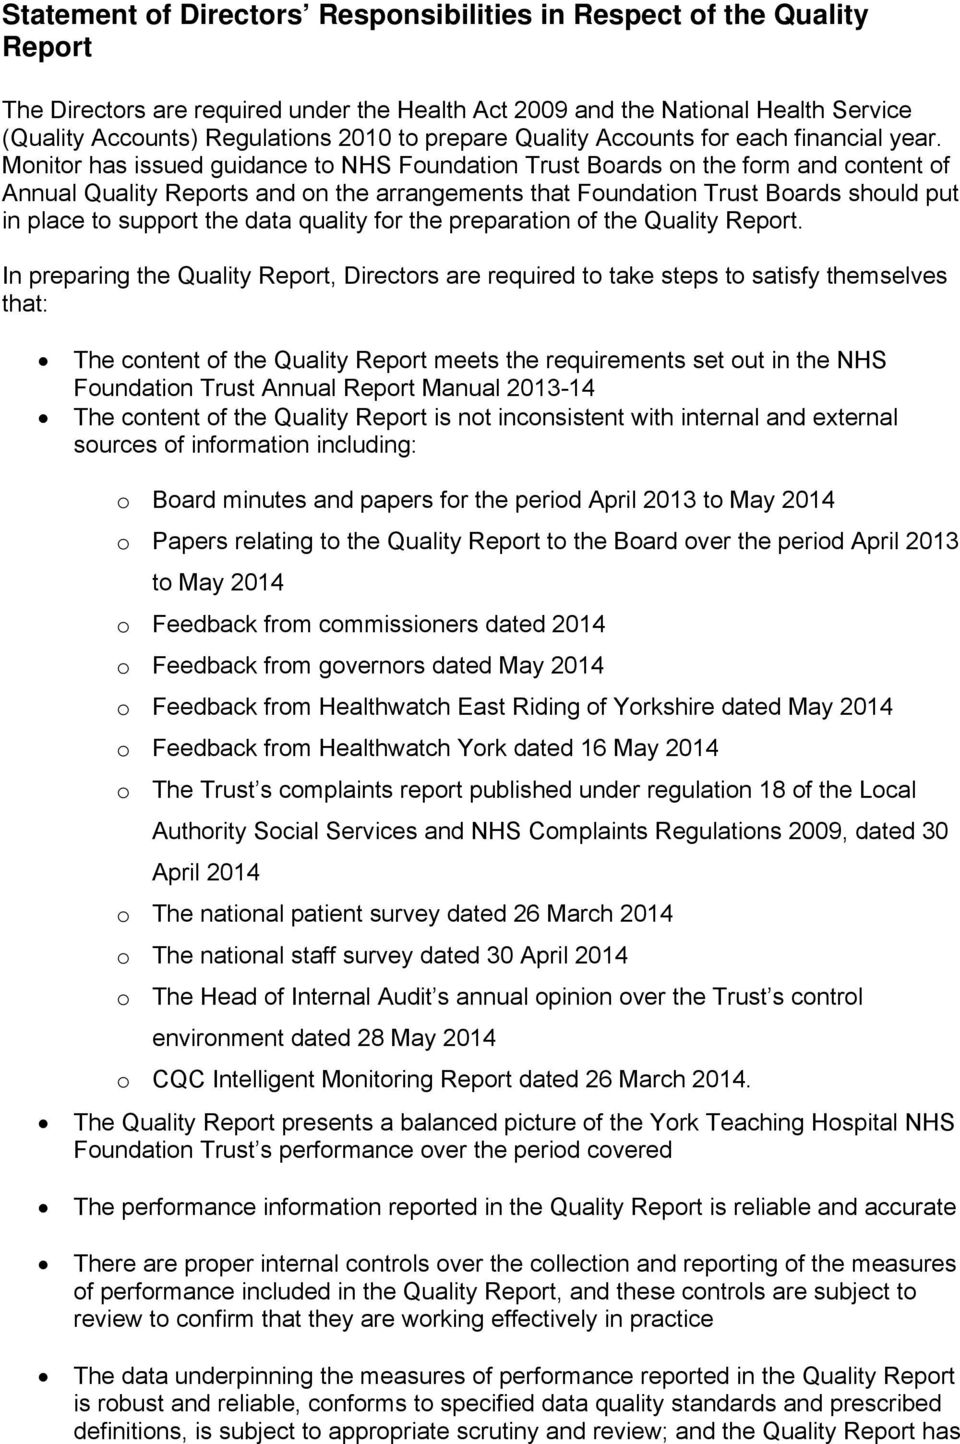 Monitor has issued guidance to NHS Foundation Boards on the form and content of Annual Quality Reports and on the arrangements that Foundation Boards should put in place to support the data quality